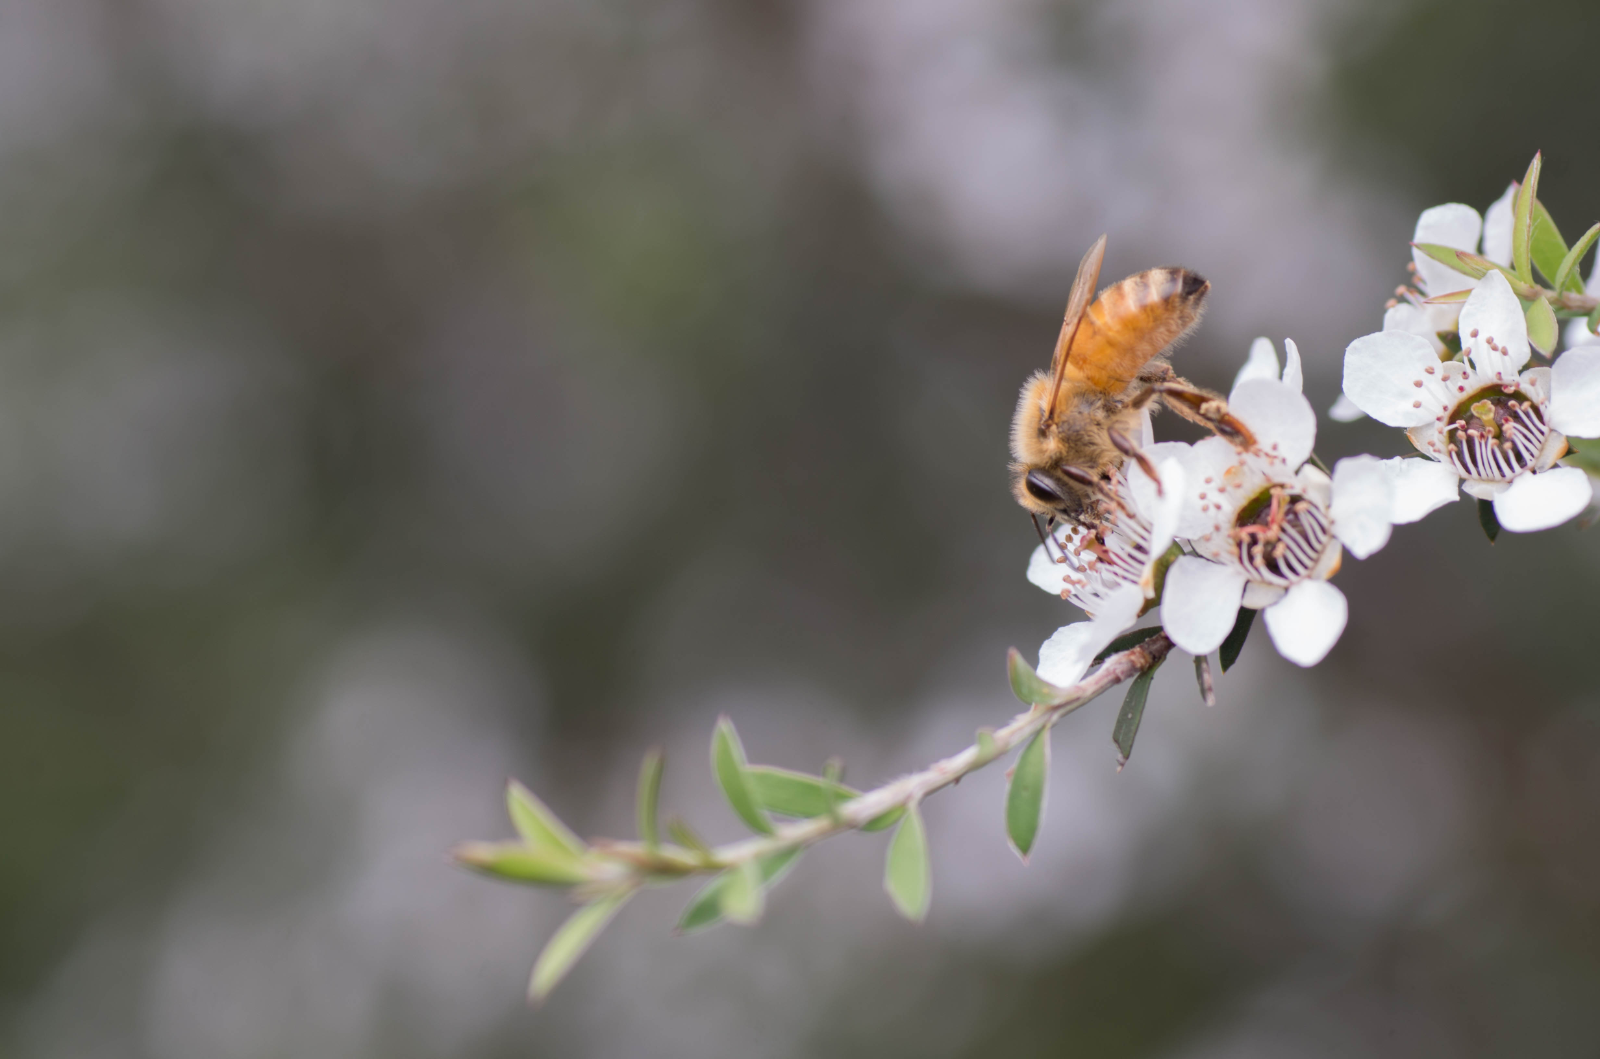 Bee foraging on Manuka flowers